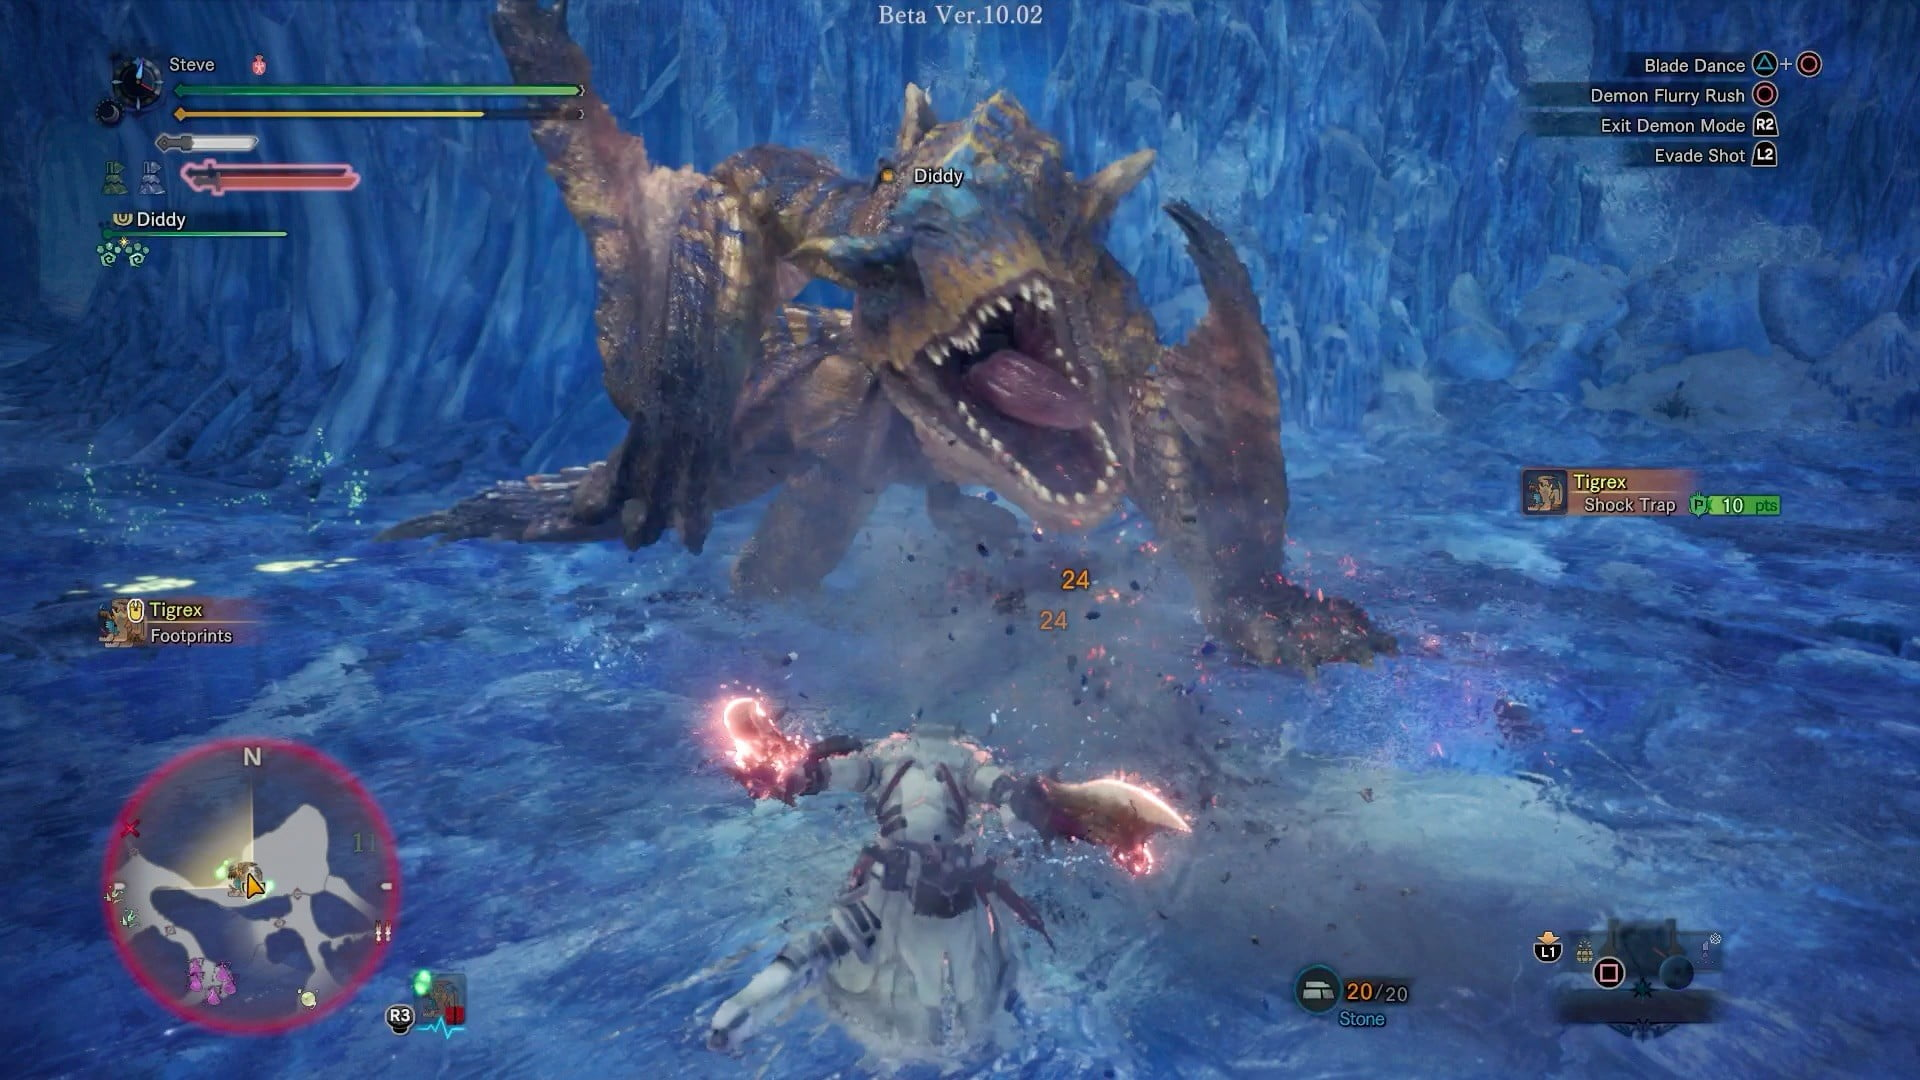 Monster Hunter World Iceborne Tips And Tricks To Mastering The Hunt